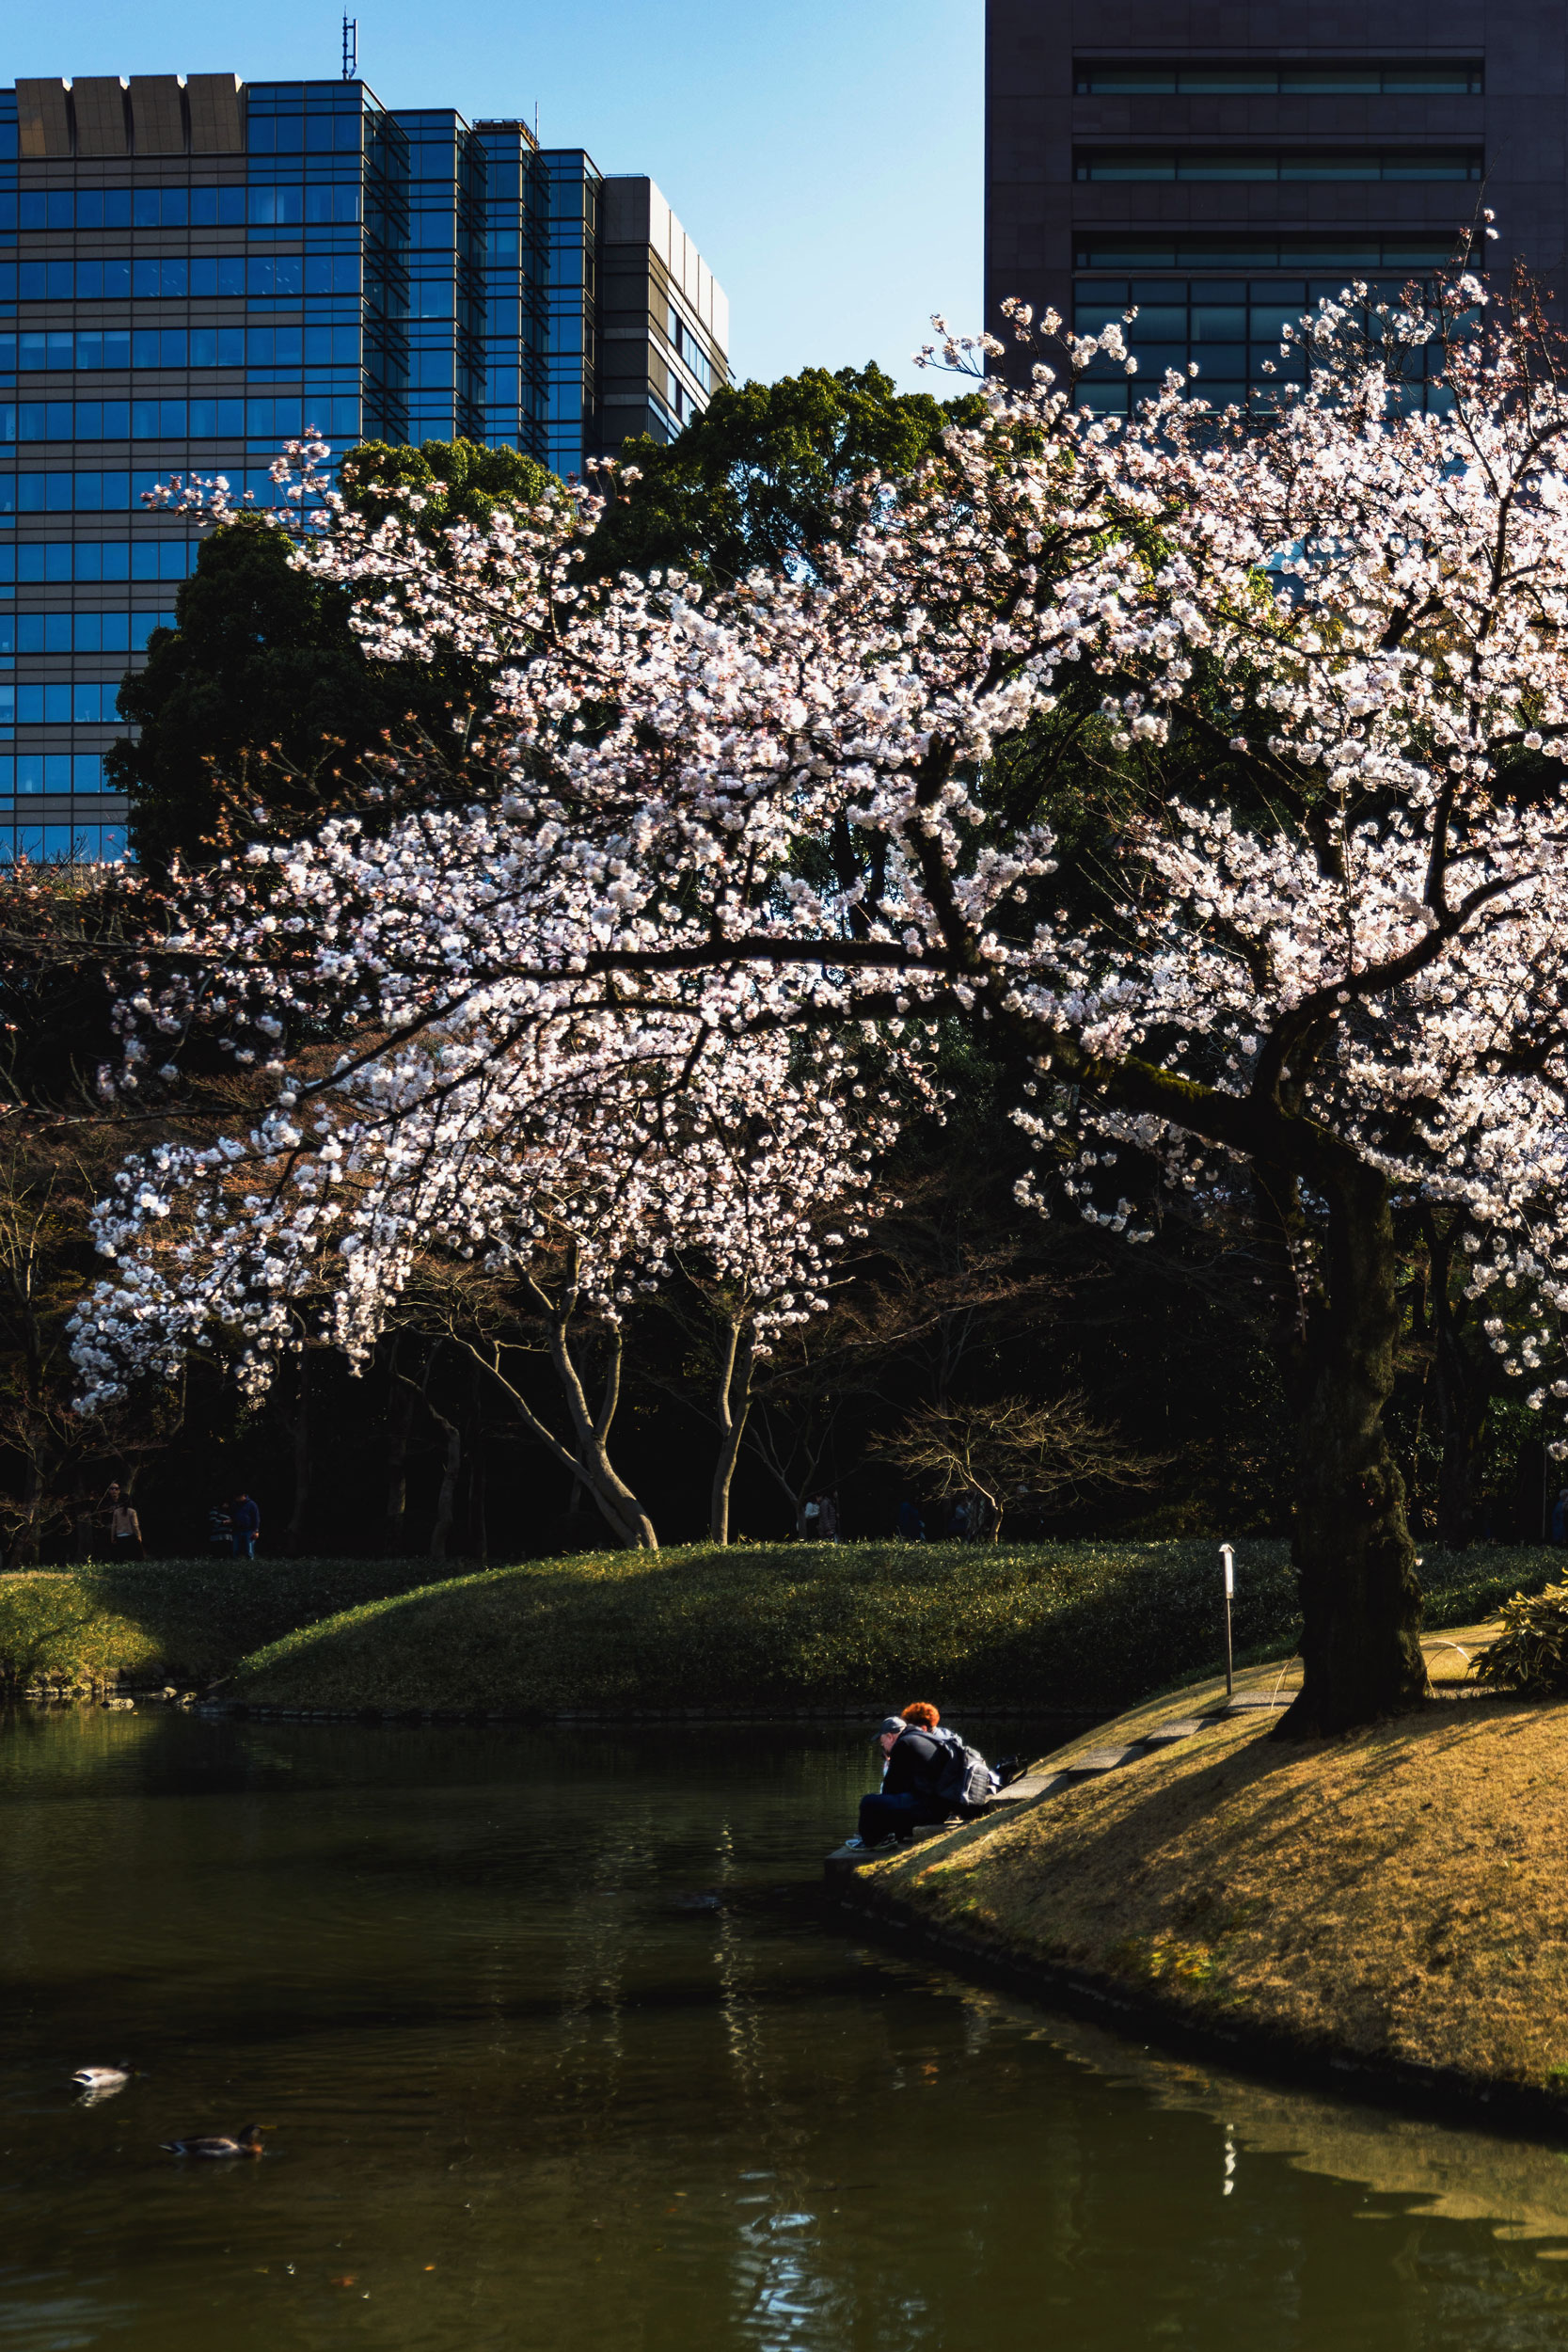 A couple enjoys the view under cherry blossoms at Koishikawa Korakuen Garden